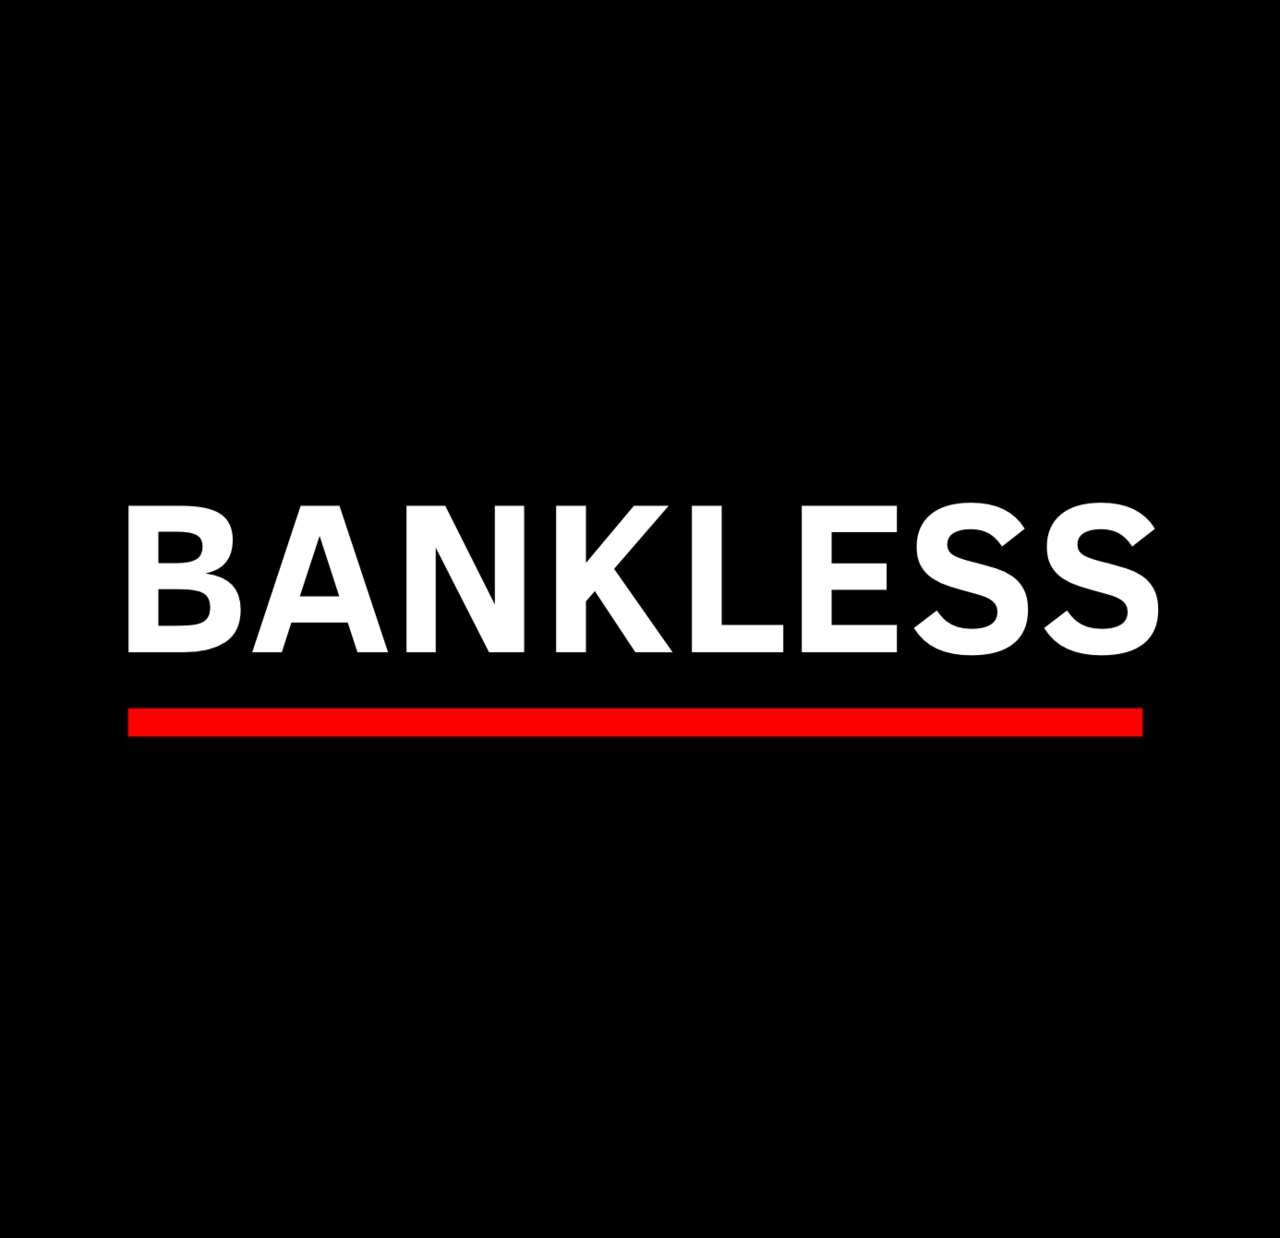 Bankless Shows